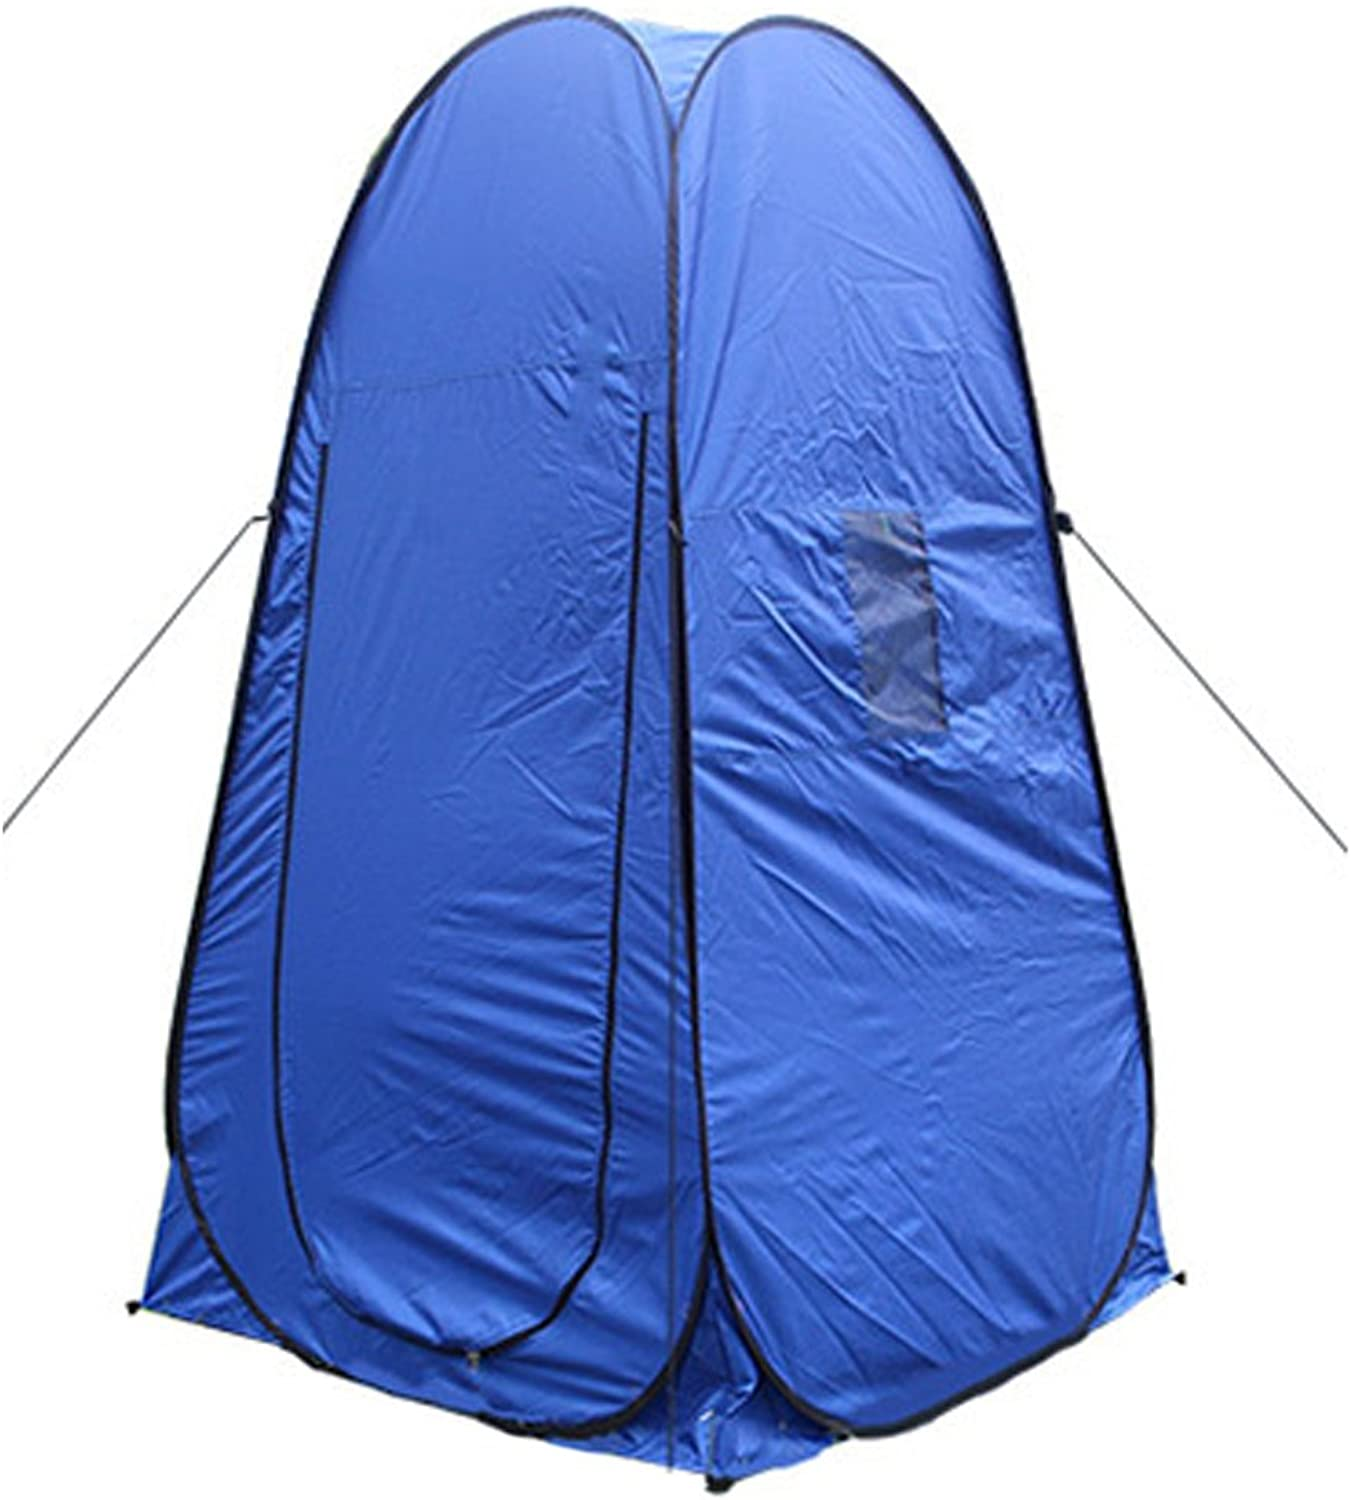 Alloet New Portable Toilet Shower Changing Beach Camping Tent Room for Outdoor Activities Travel